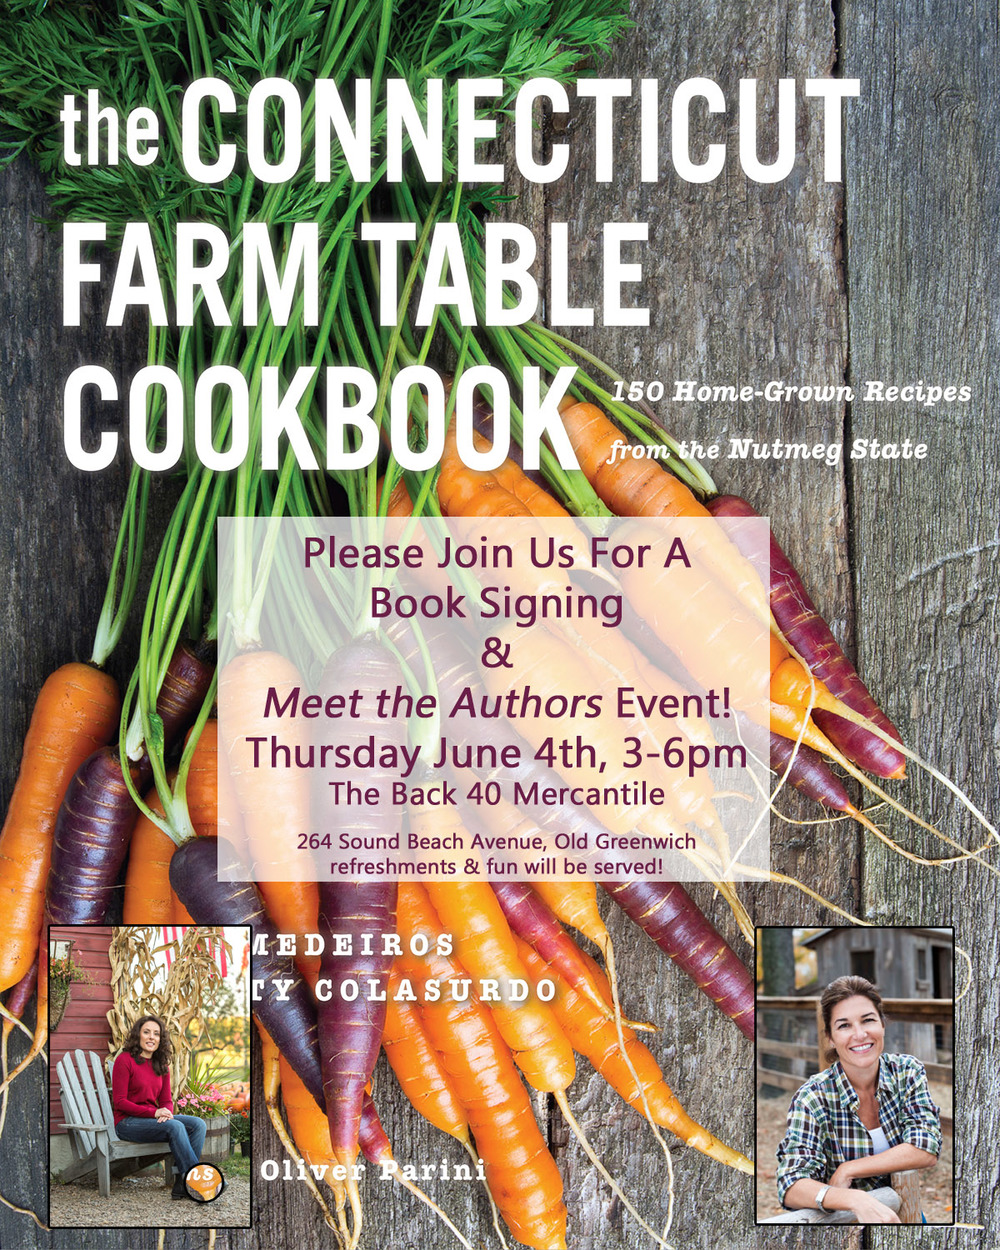 CT Farm Table Cookbook Signing